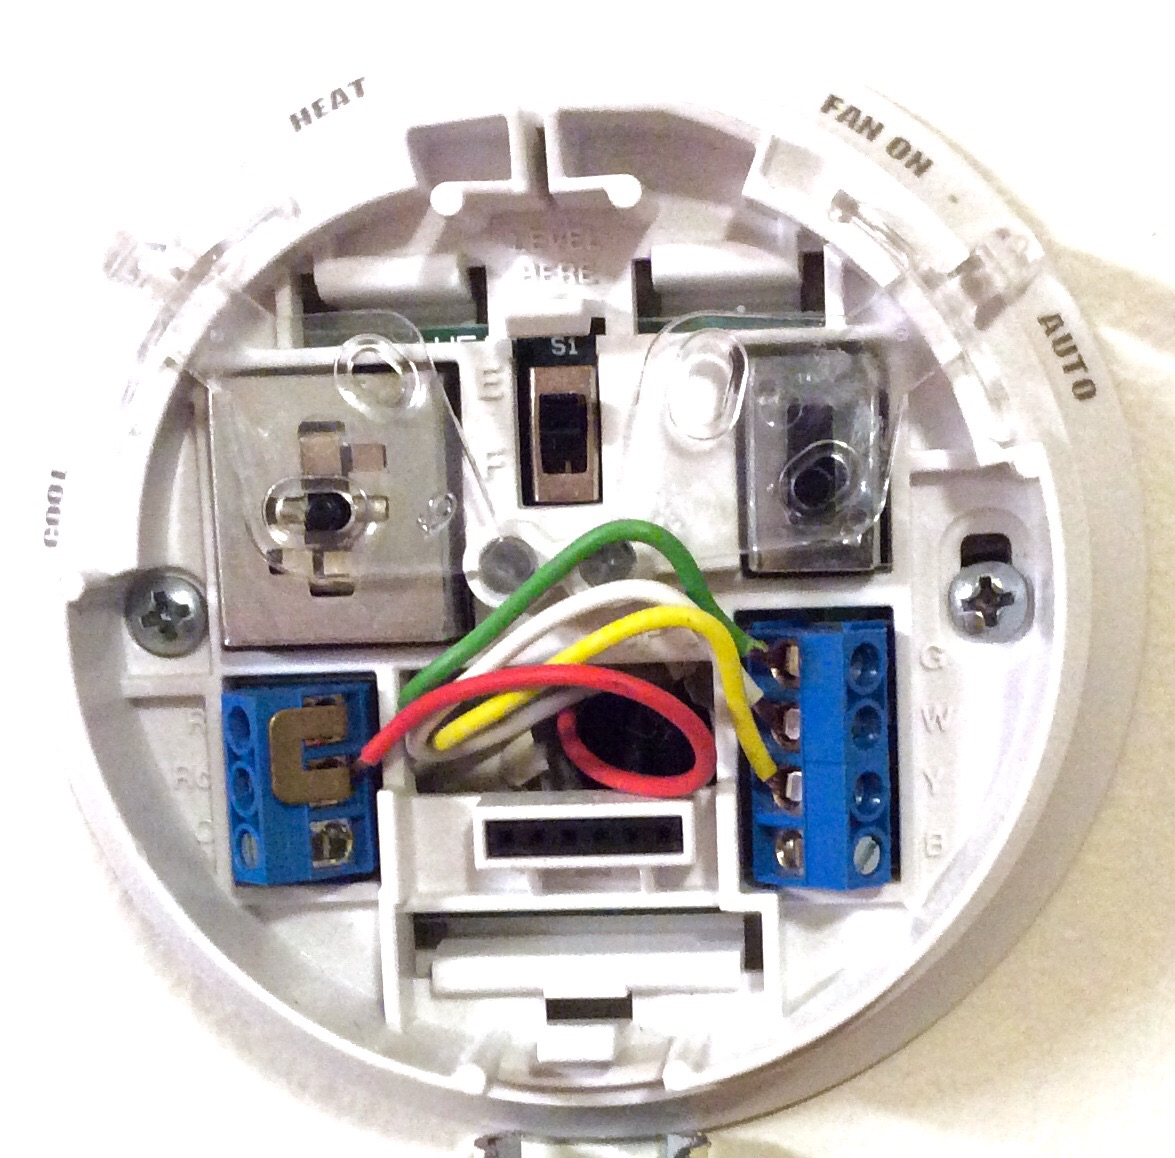 Honeywell Thermostat Wiring Color Code Toms Tek Stop For Central Ac Picture Of The Commonly Used Green White Yellow